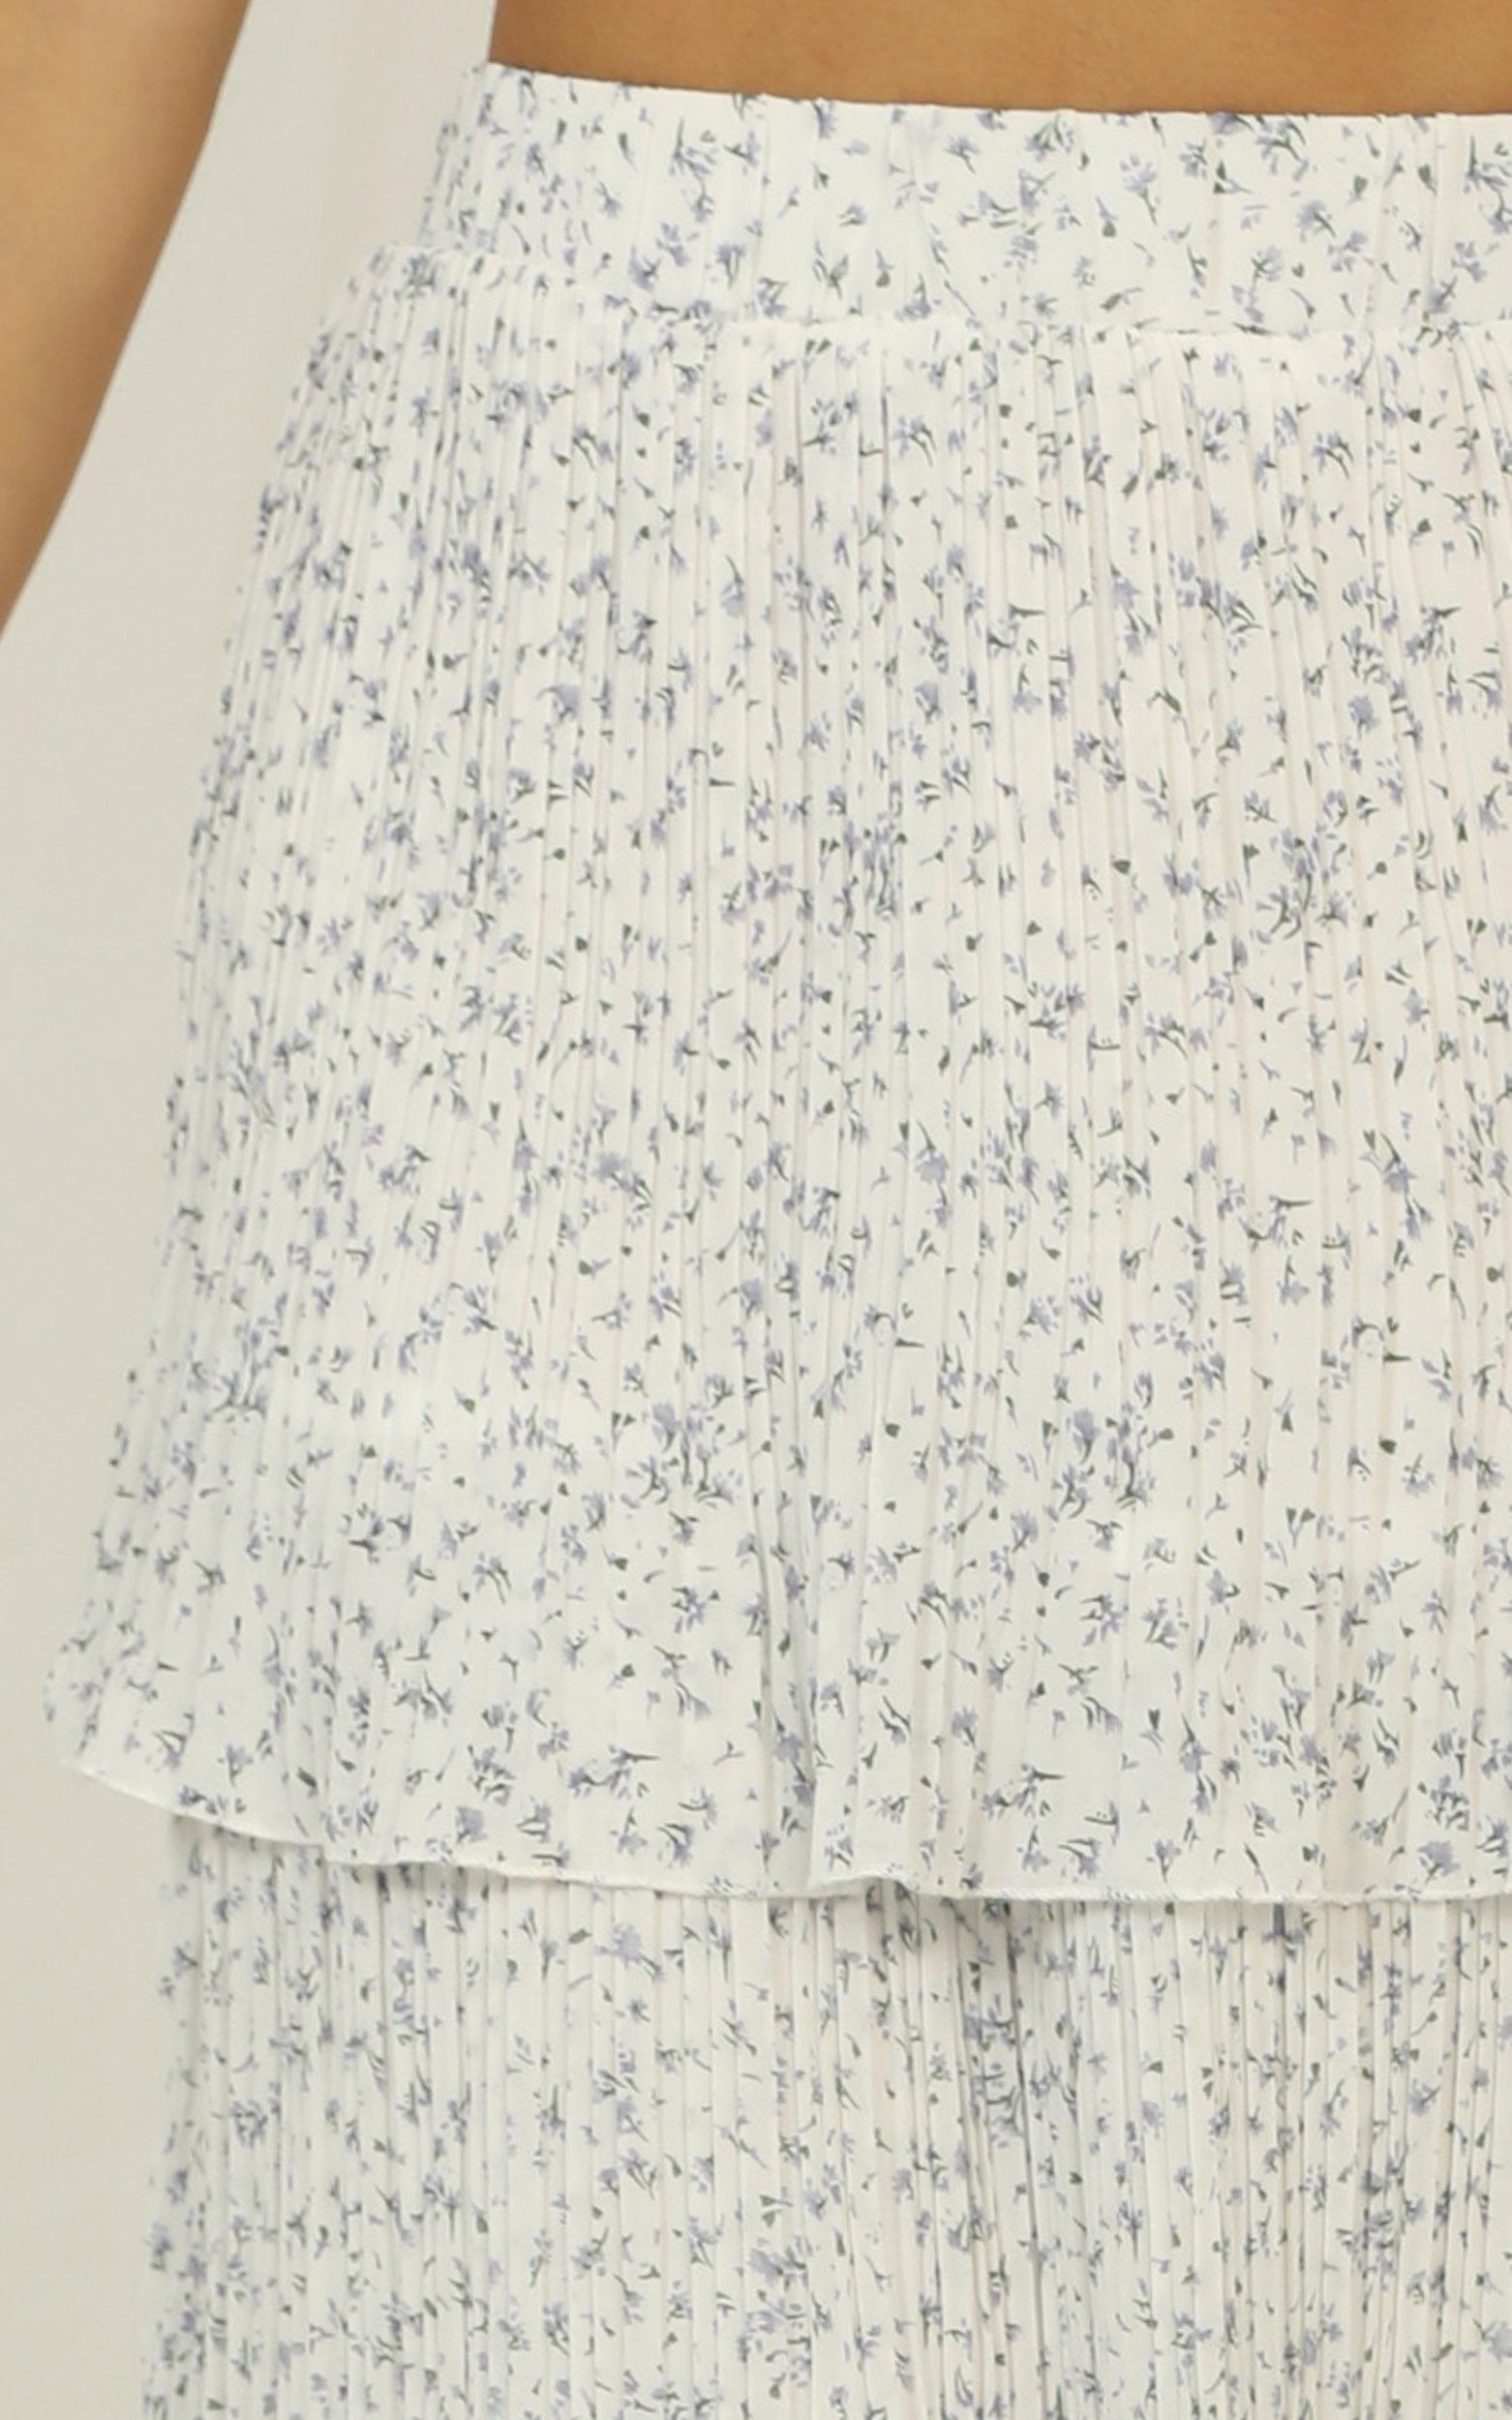 Tender Touch skirt in white floral - 14 (XL), White, hi-res image number null